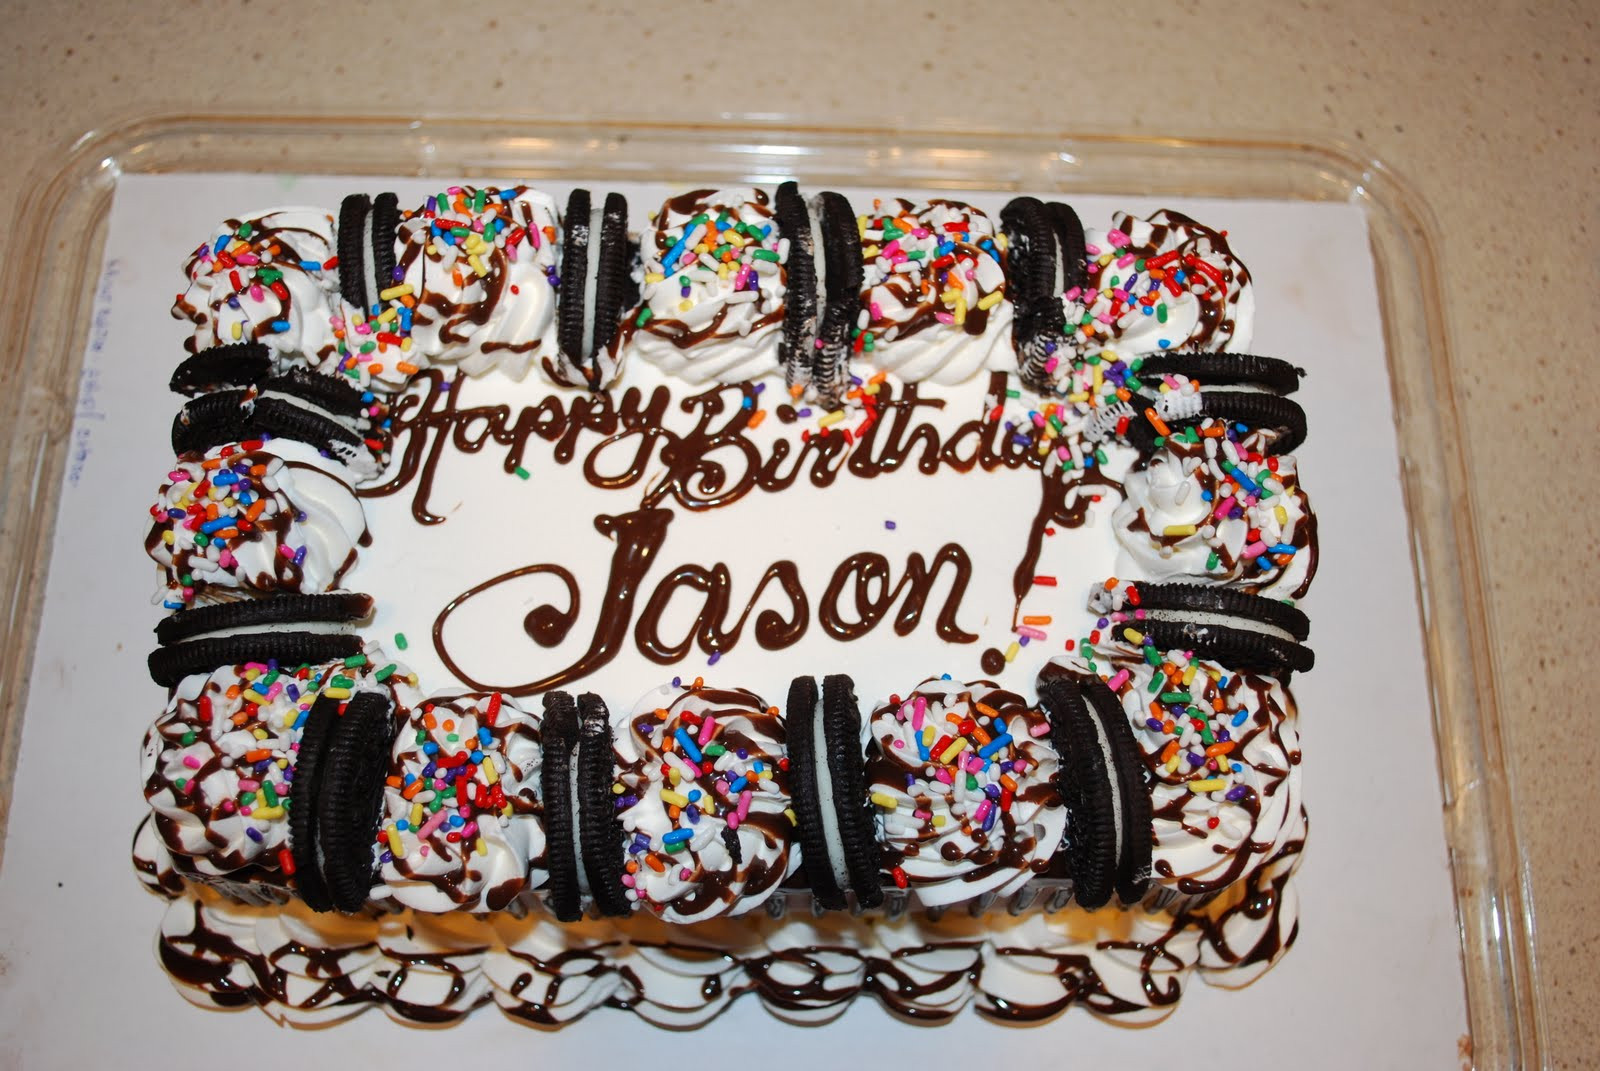 Best ideas about Happy Birthday Jason Cake . Save or Pin Naptime Confessions Happy Birthday Jason Now.